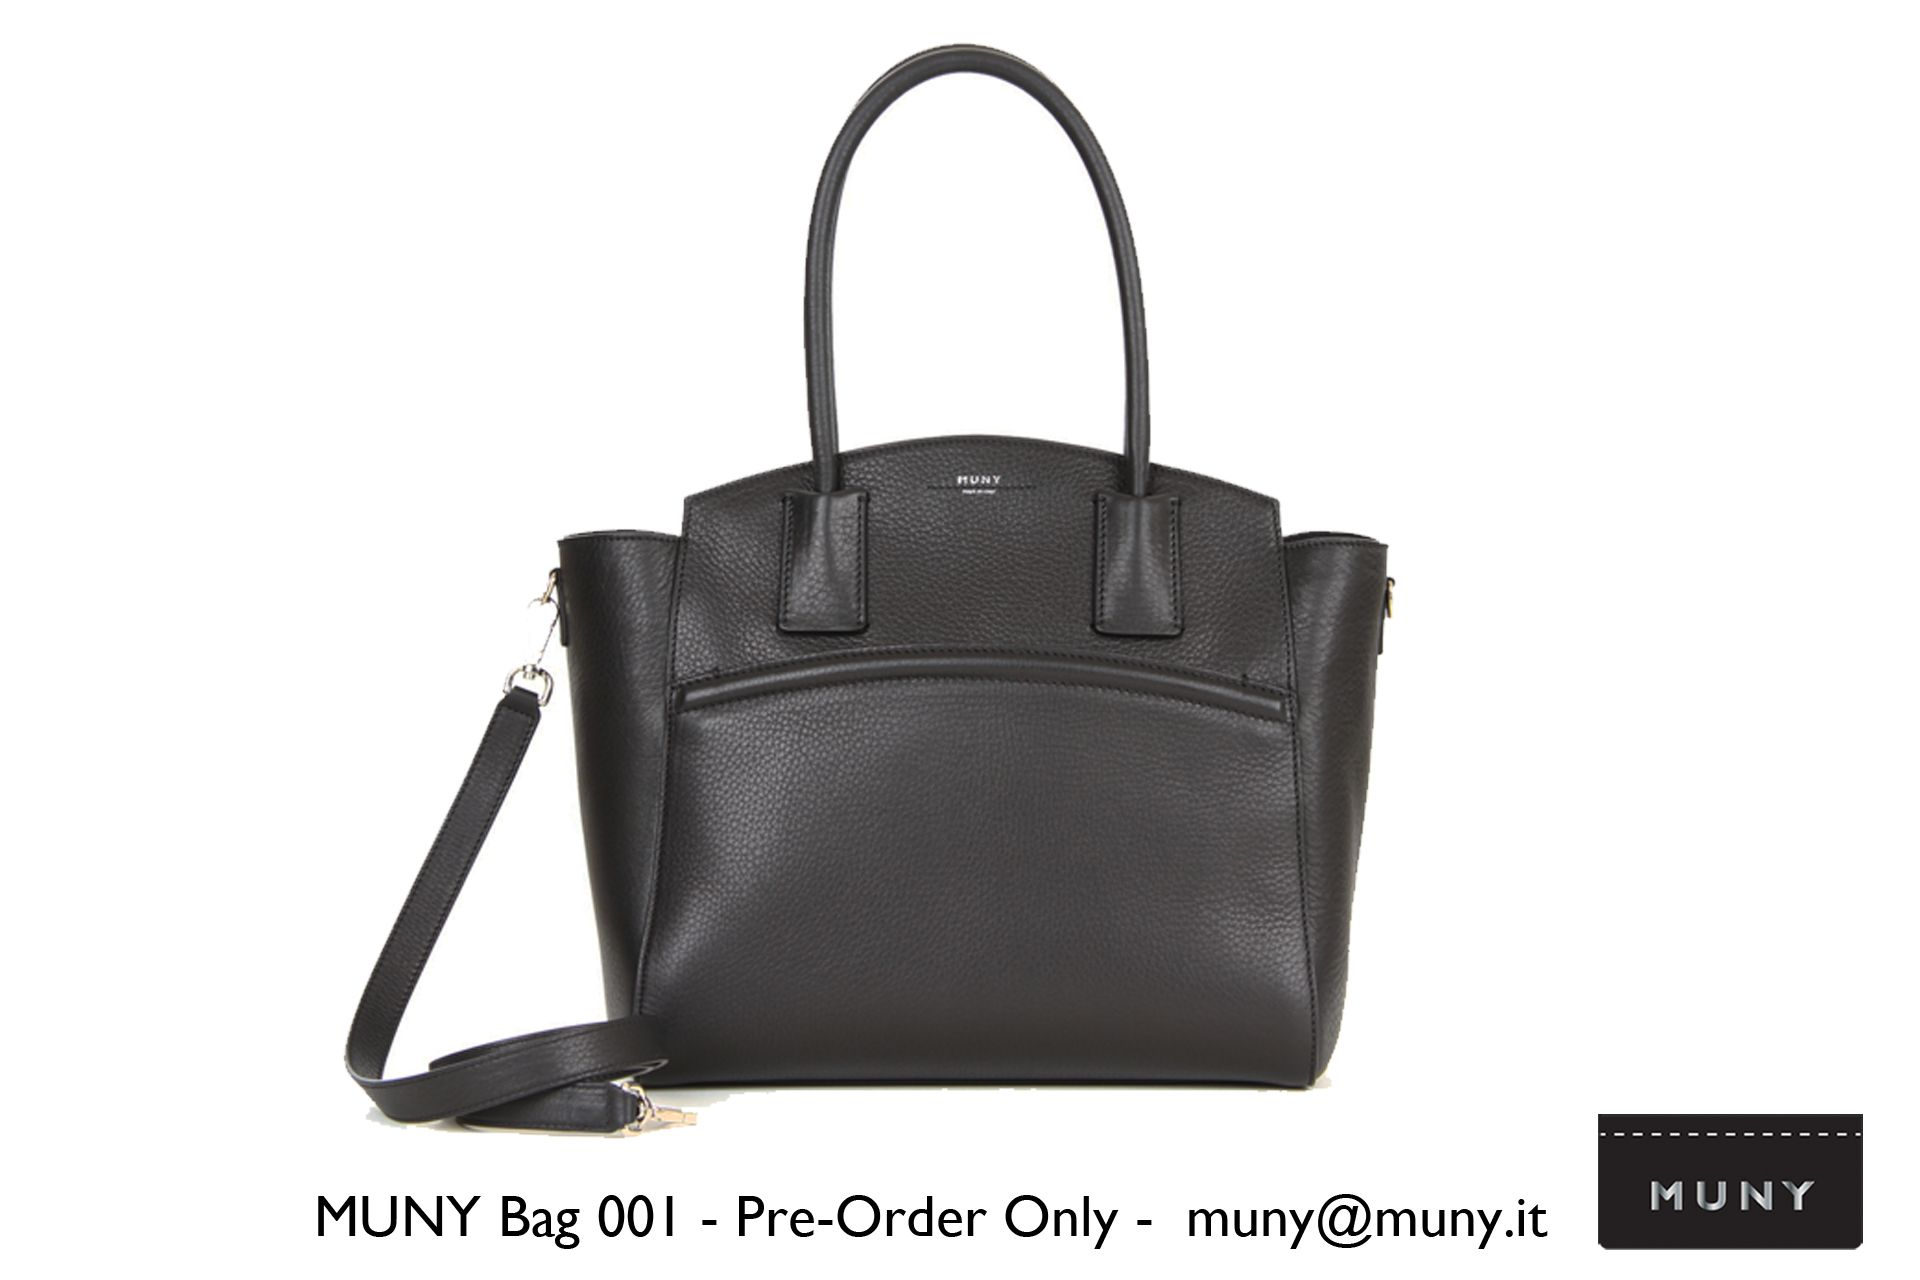 MUNY Bag 001 - Timeless Modern Design www.muny.it